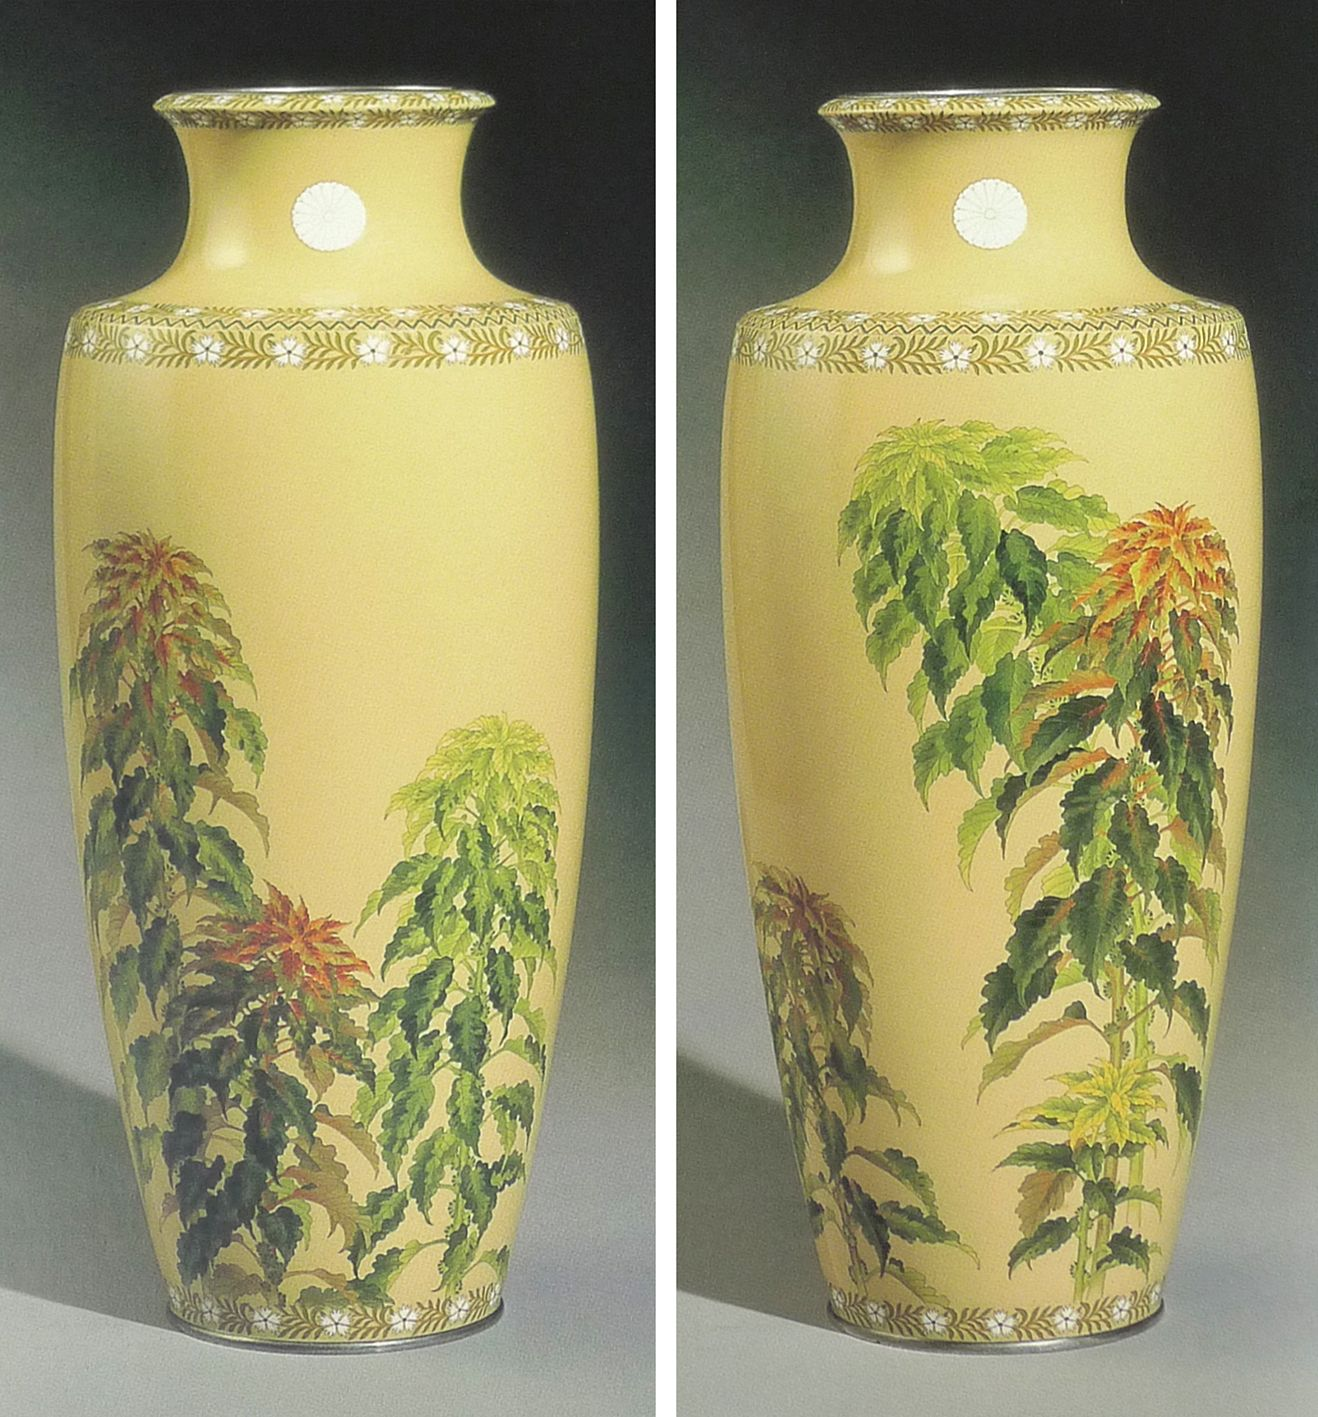 Pair of Imperial presentation cloisonne vases, worked in silver wires, with silver rims and feet. Height 44cm. Made by the Ando Workshop.